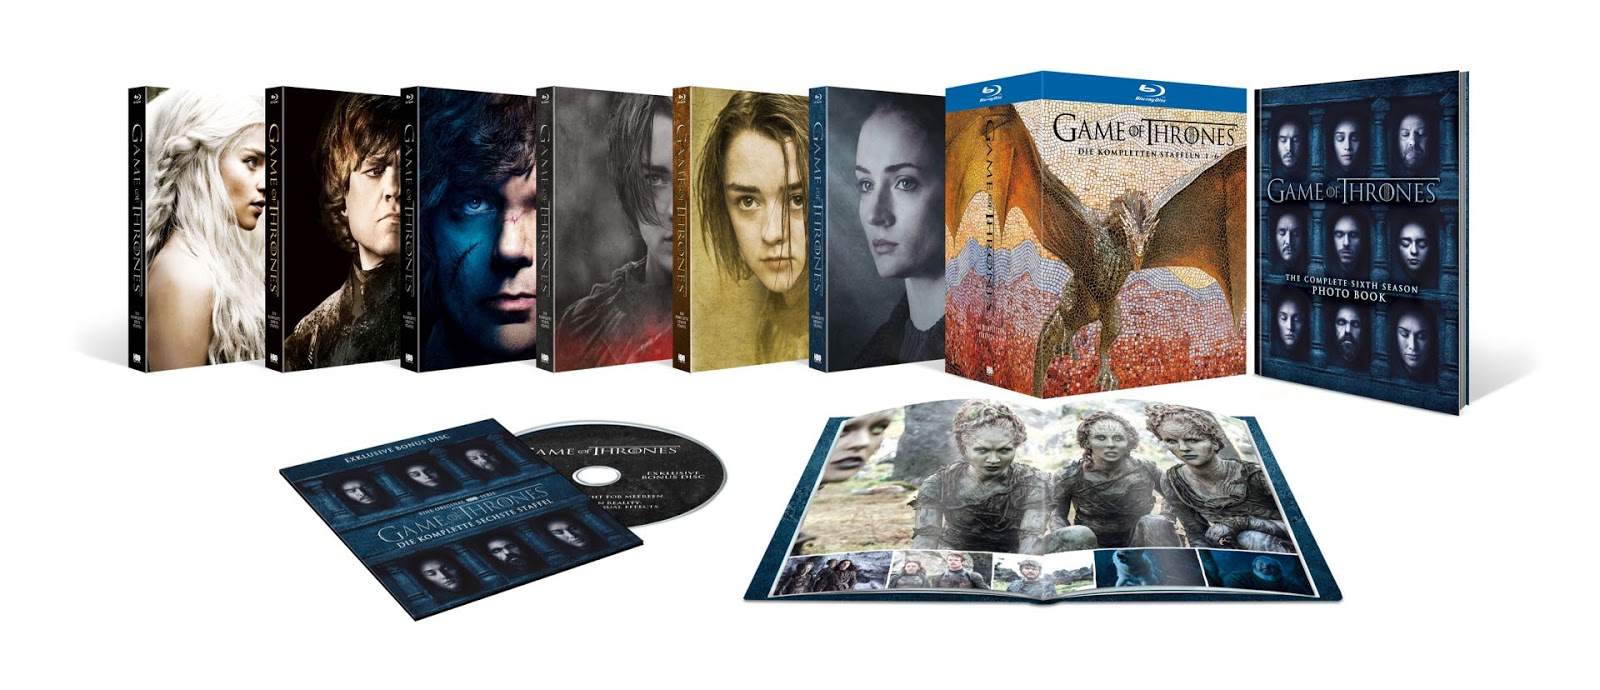 Bs To Game Of Thrones Staffel 1